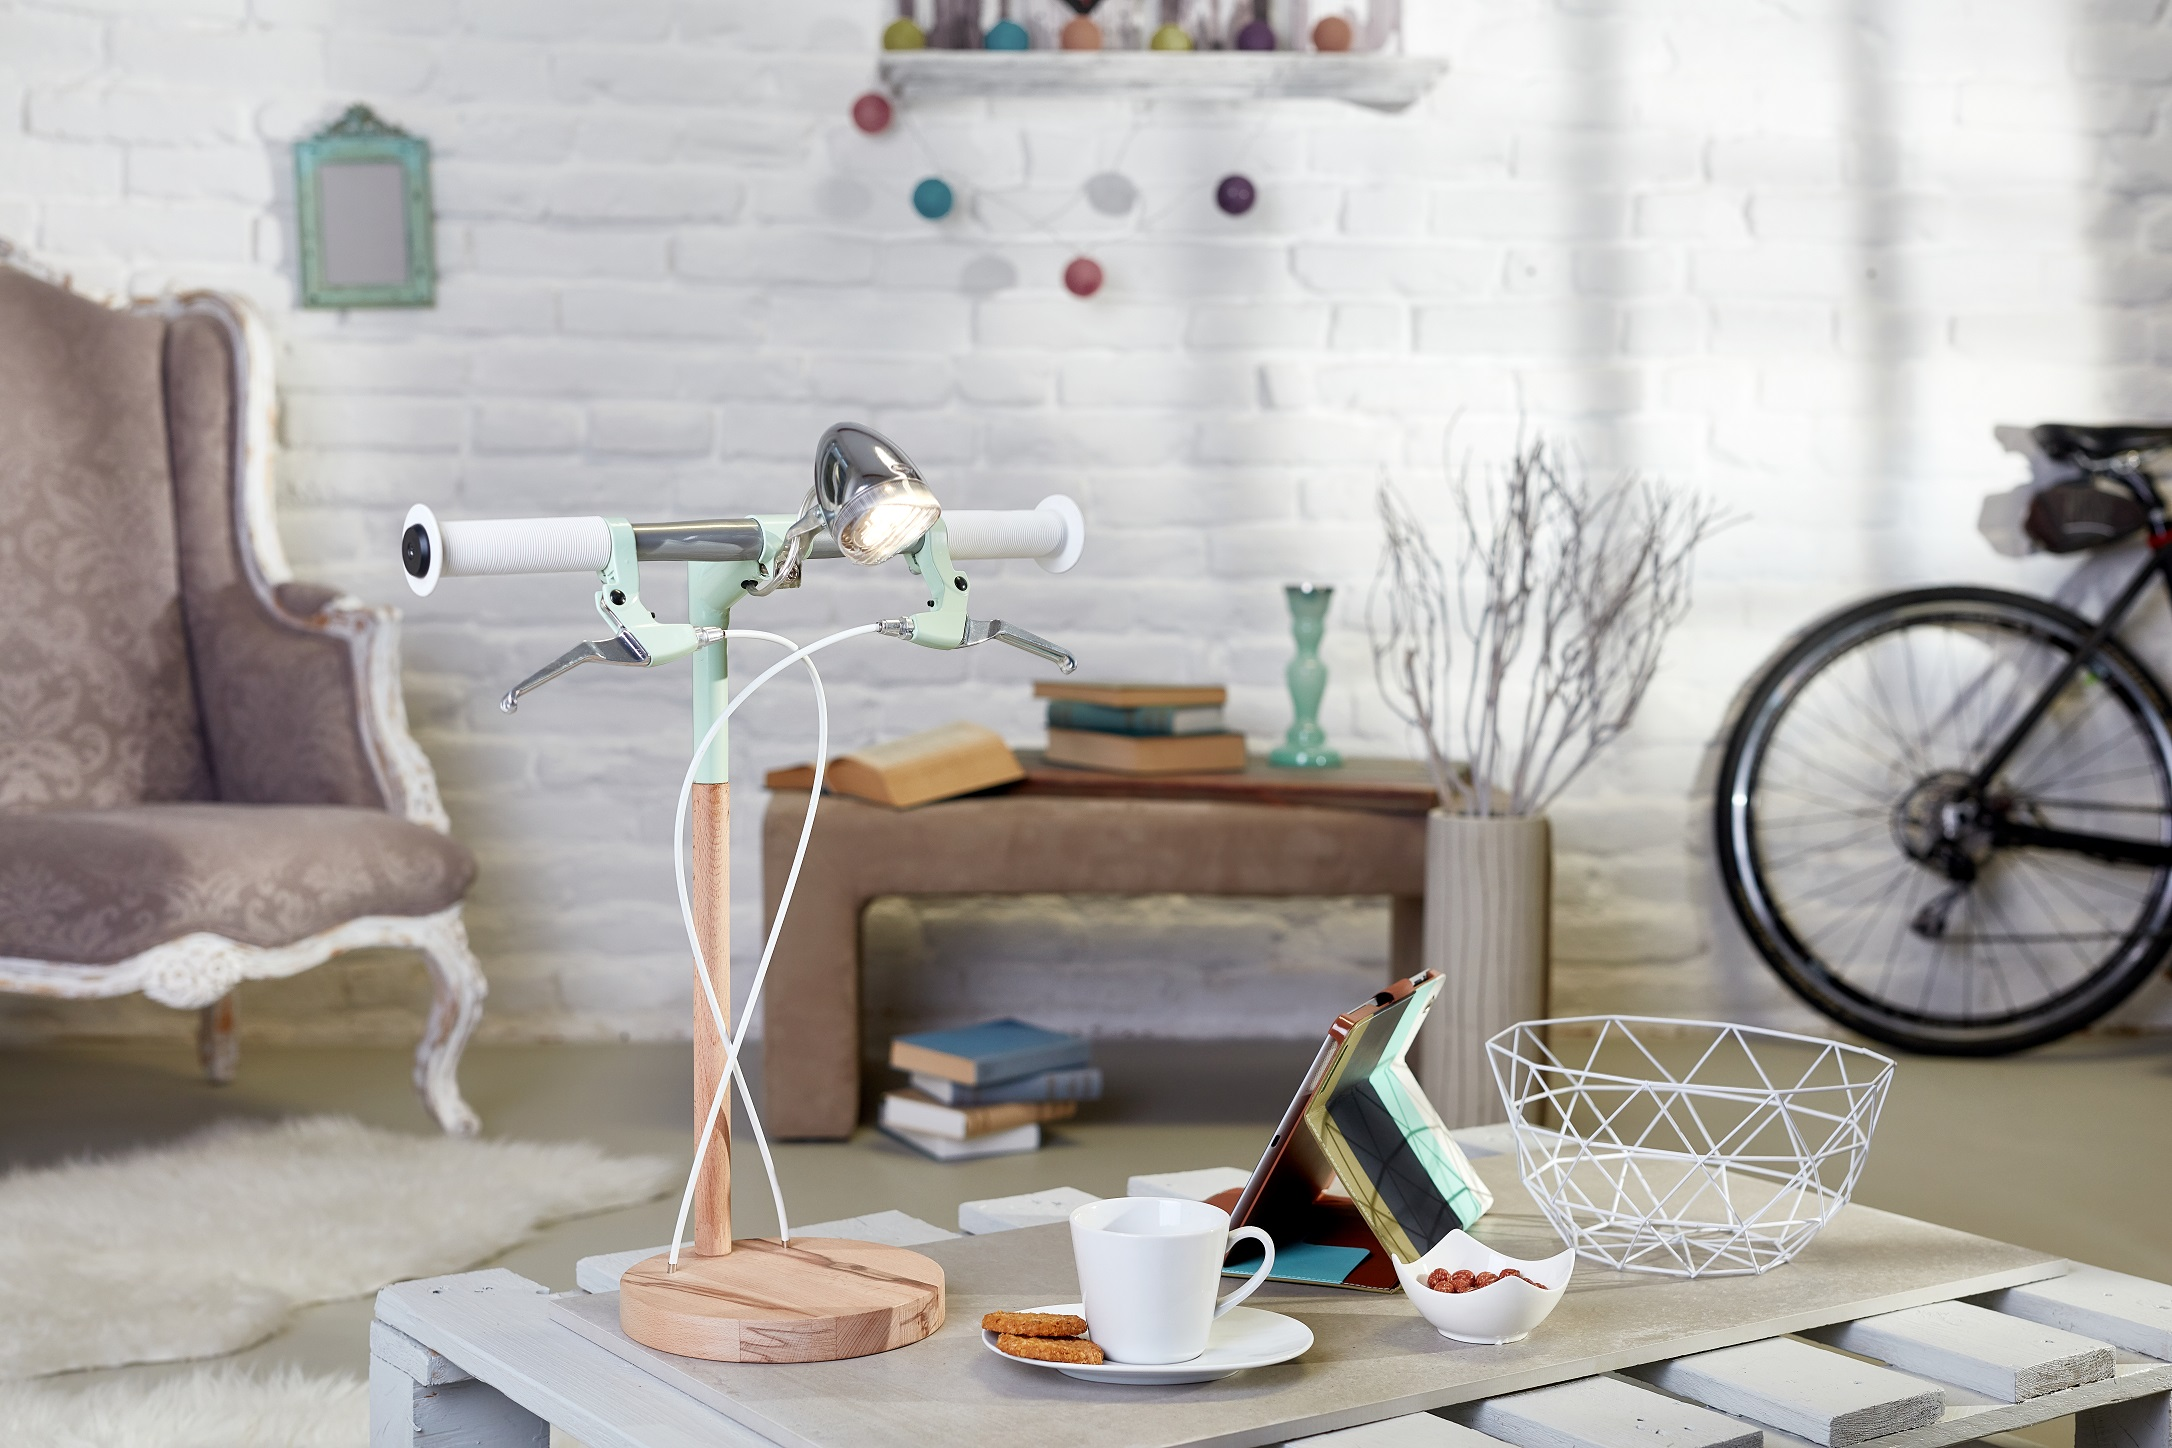 desk lamp Find Bike desk lamp by Industrial Kid Find Bike desk lamp by Industrial Kid 1